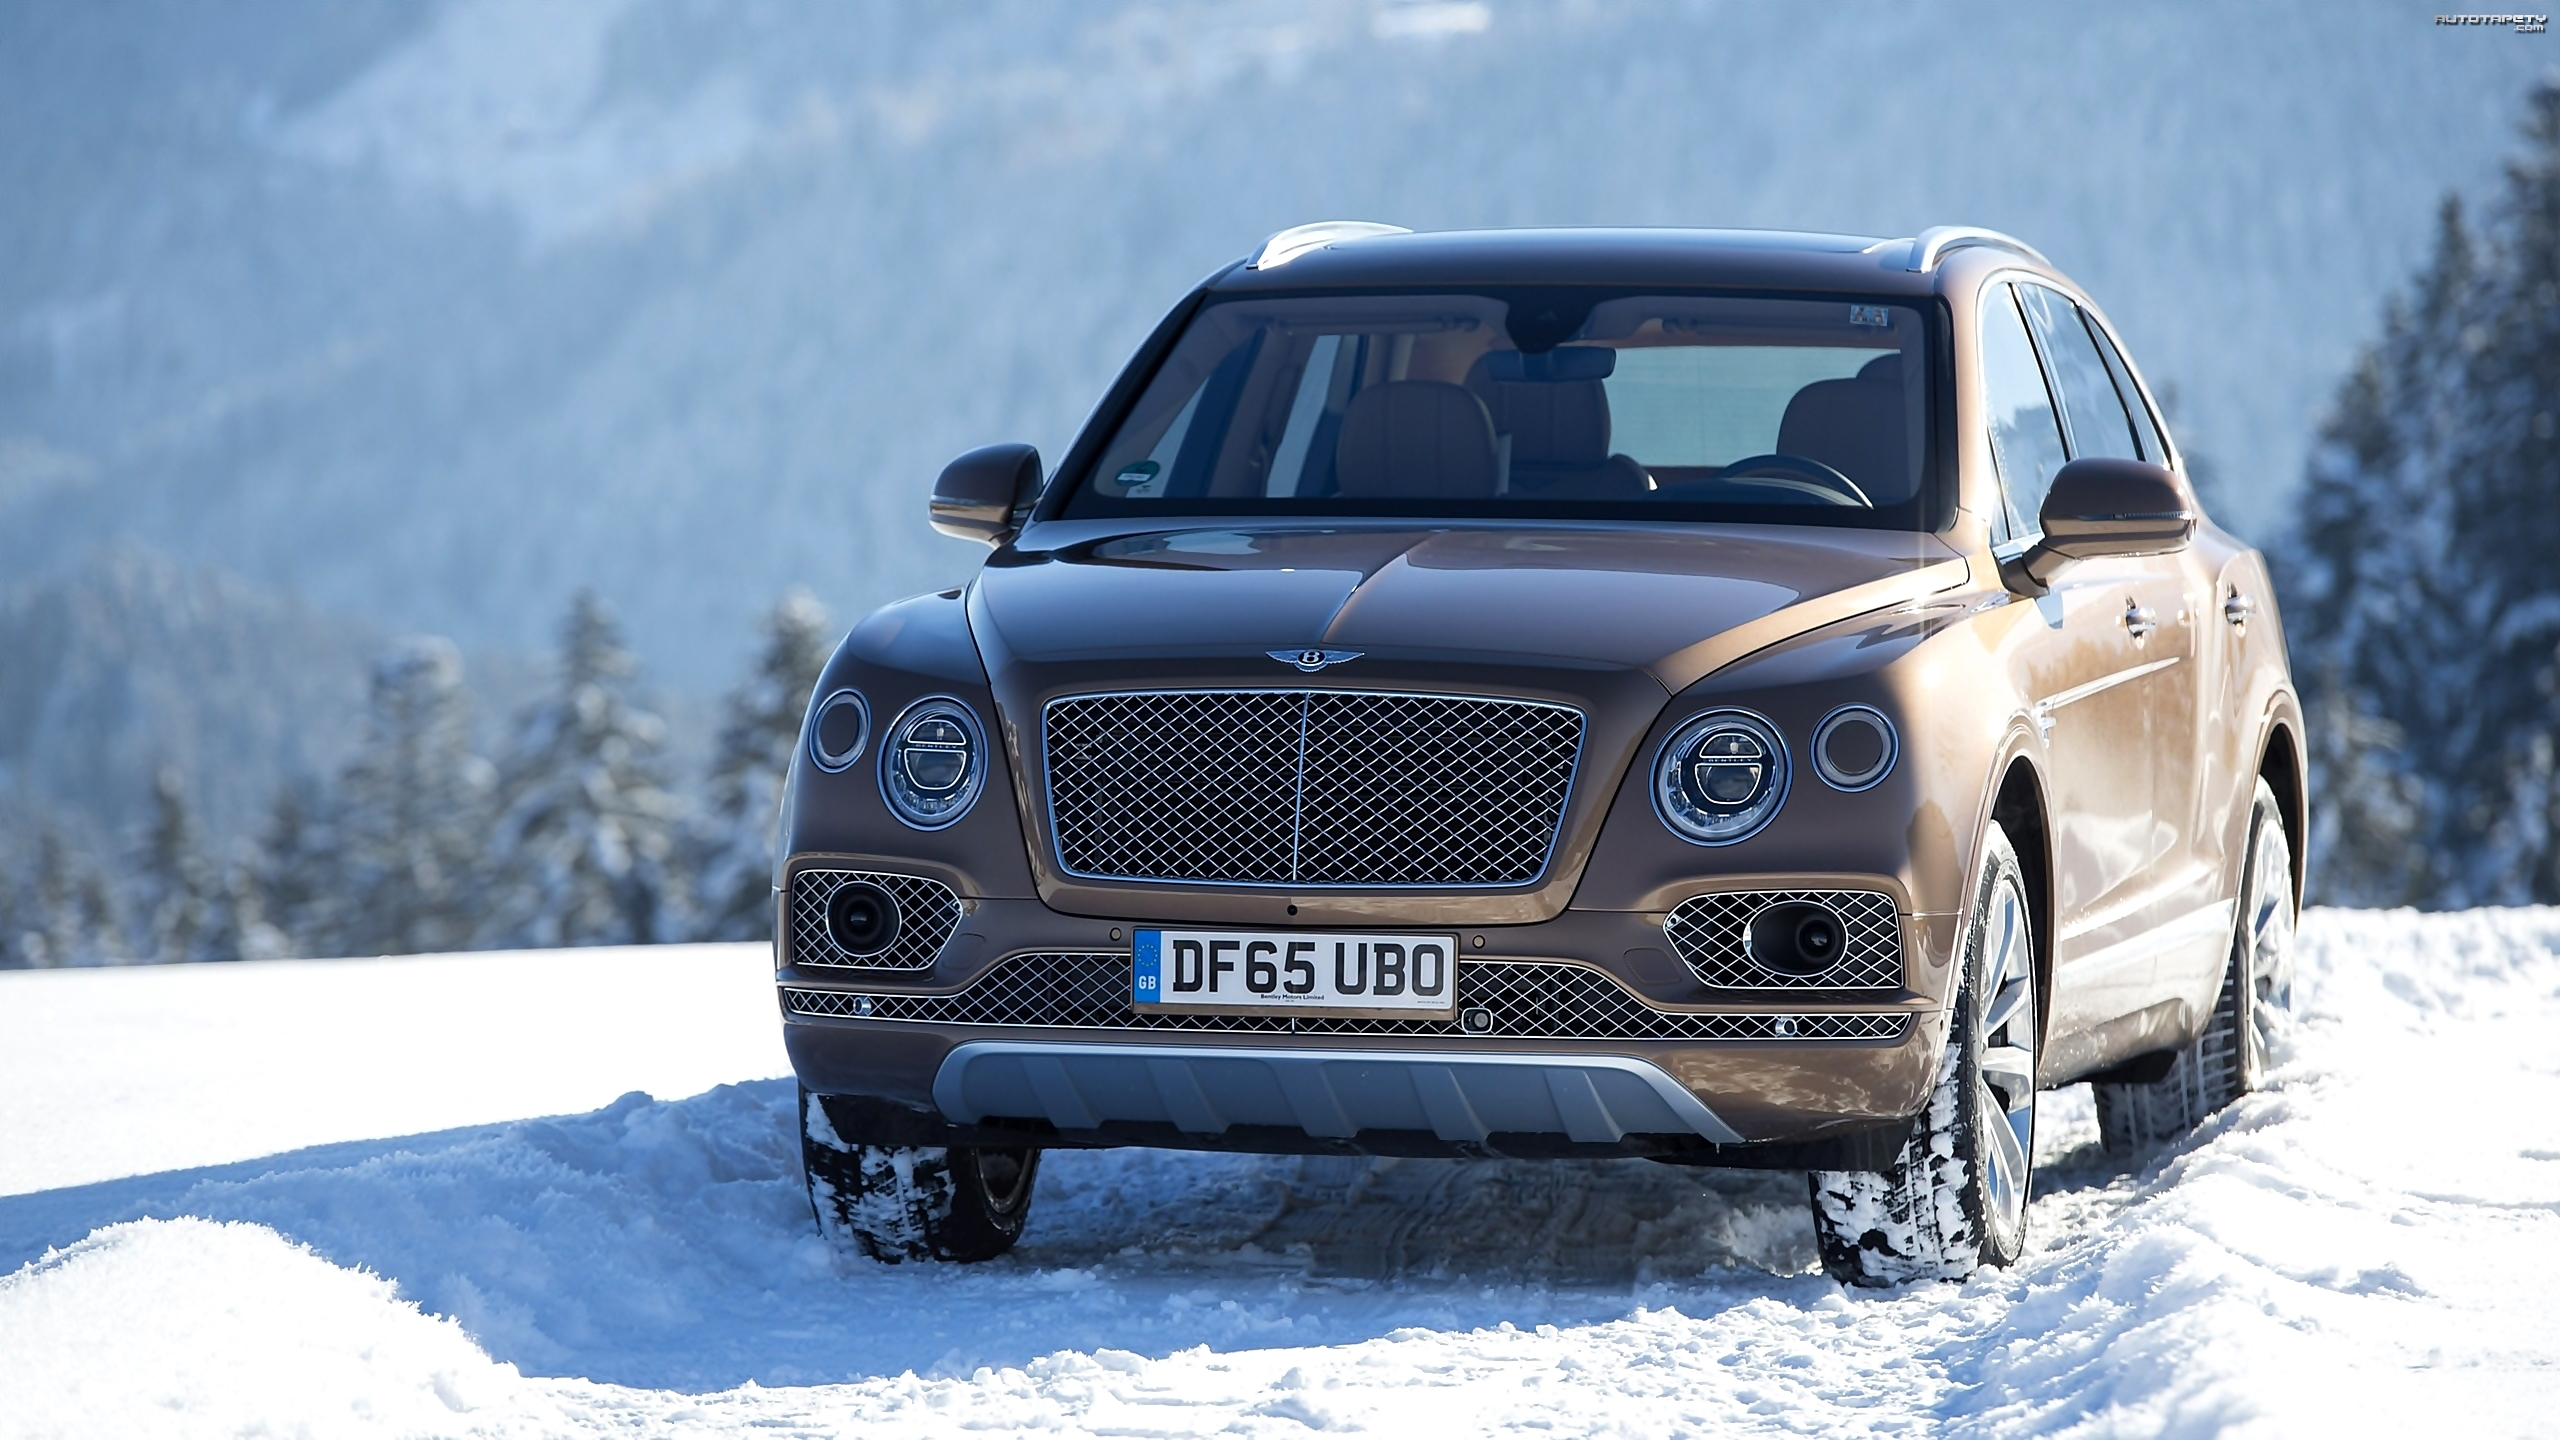 Bentley Bentayga, Śnieg